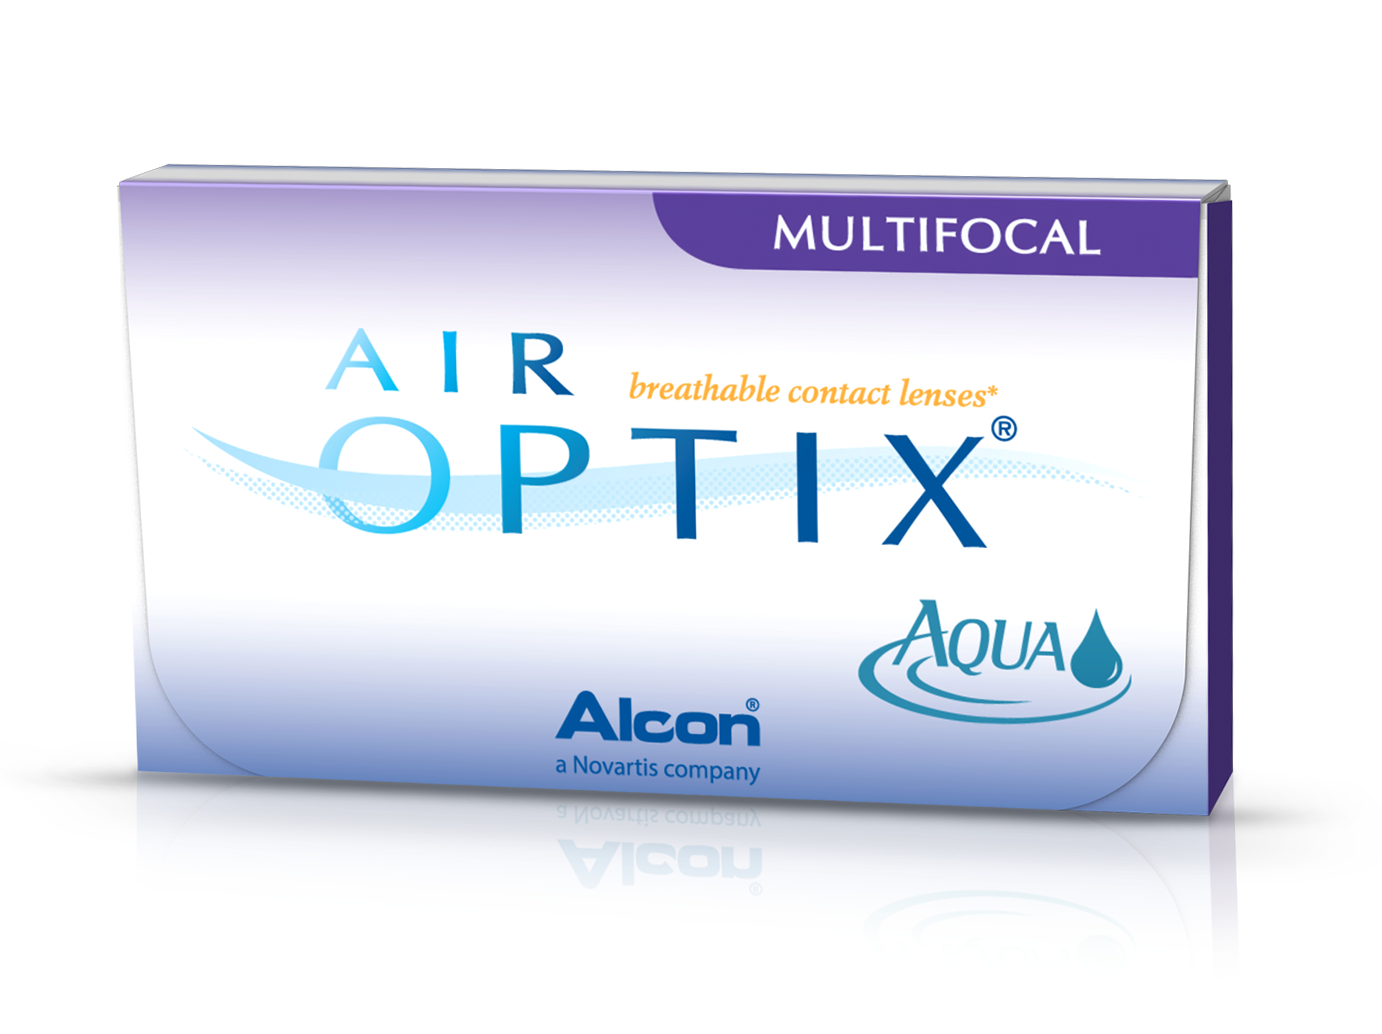 Optica Paesani Lentes De Contacto Air Optix Multifocal